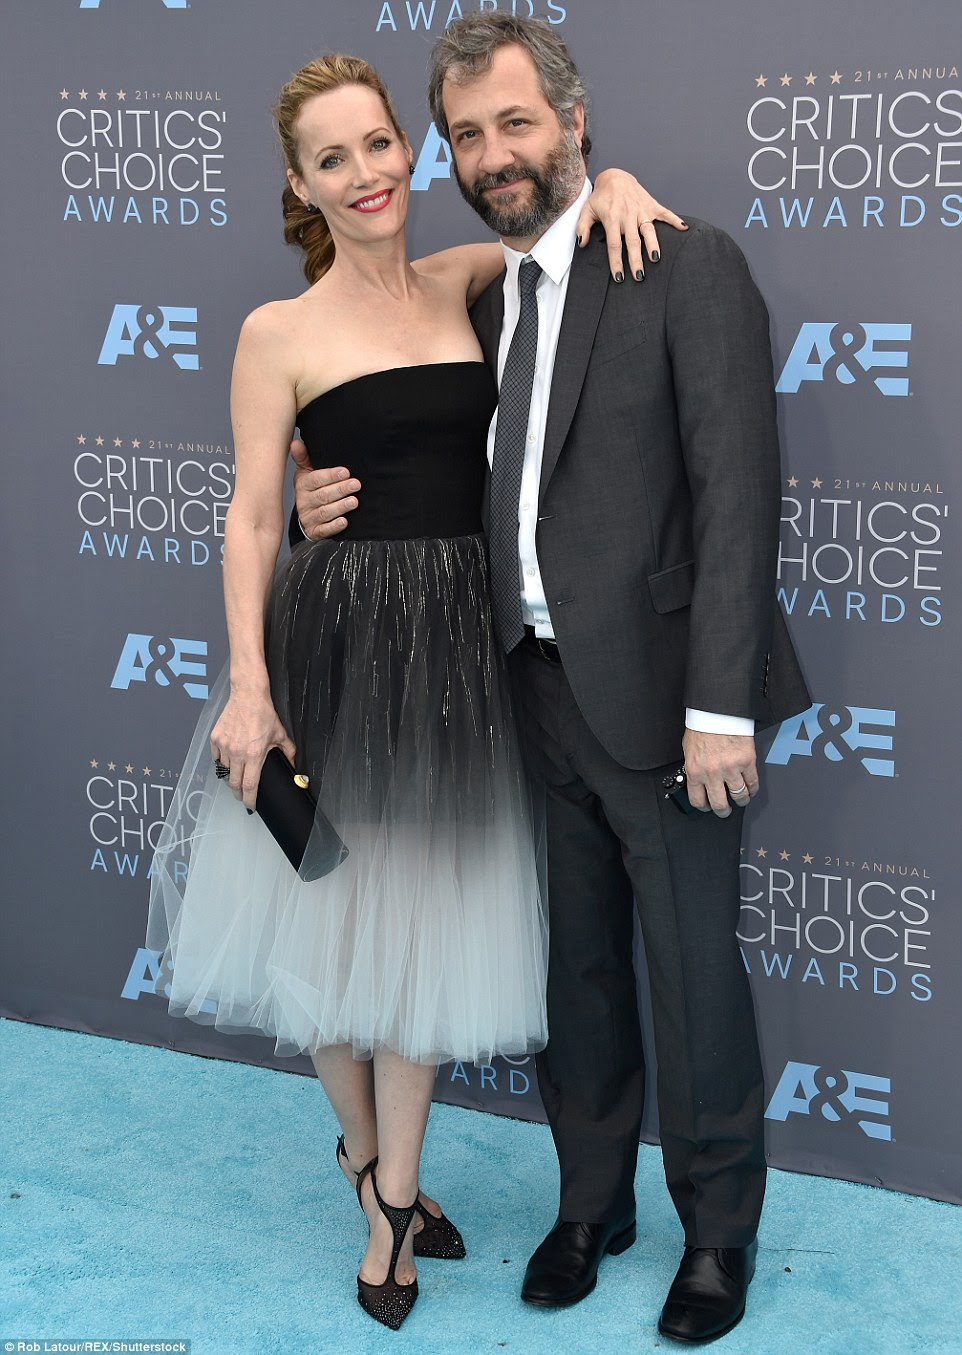 His princess: Judd Apatow was joined by Leslie Mann, who looked fabulous in a black and white frock byMonique Lhuillier